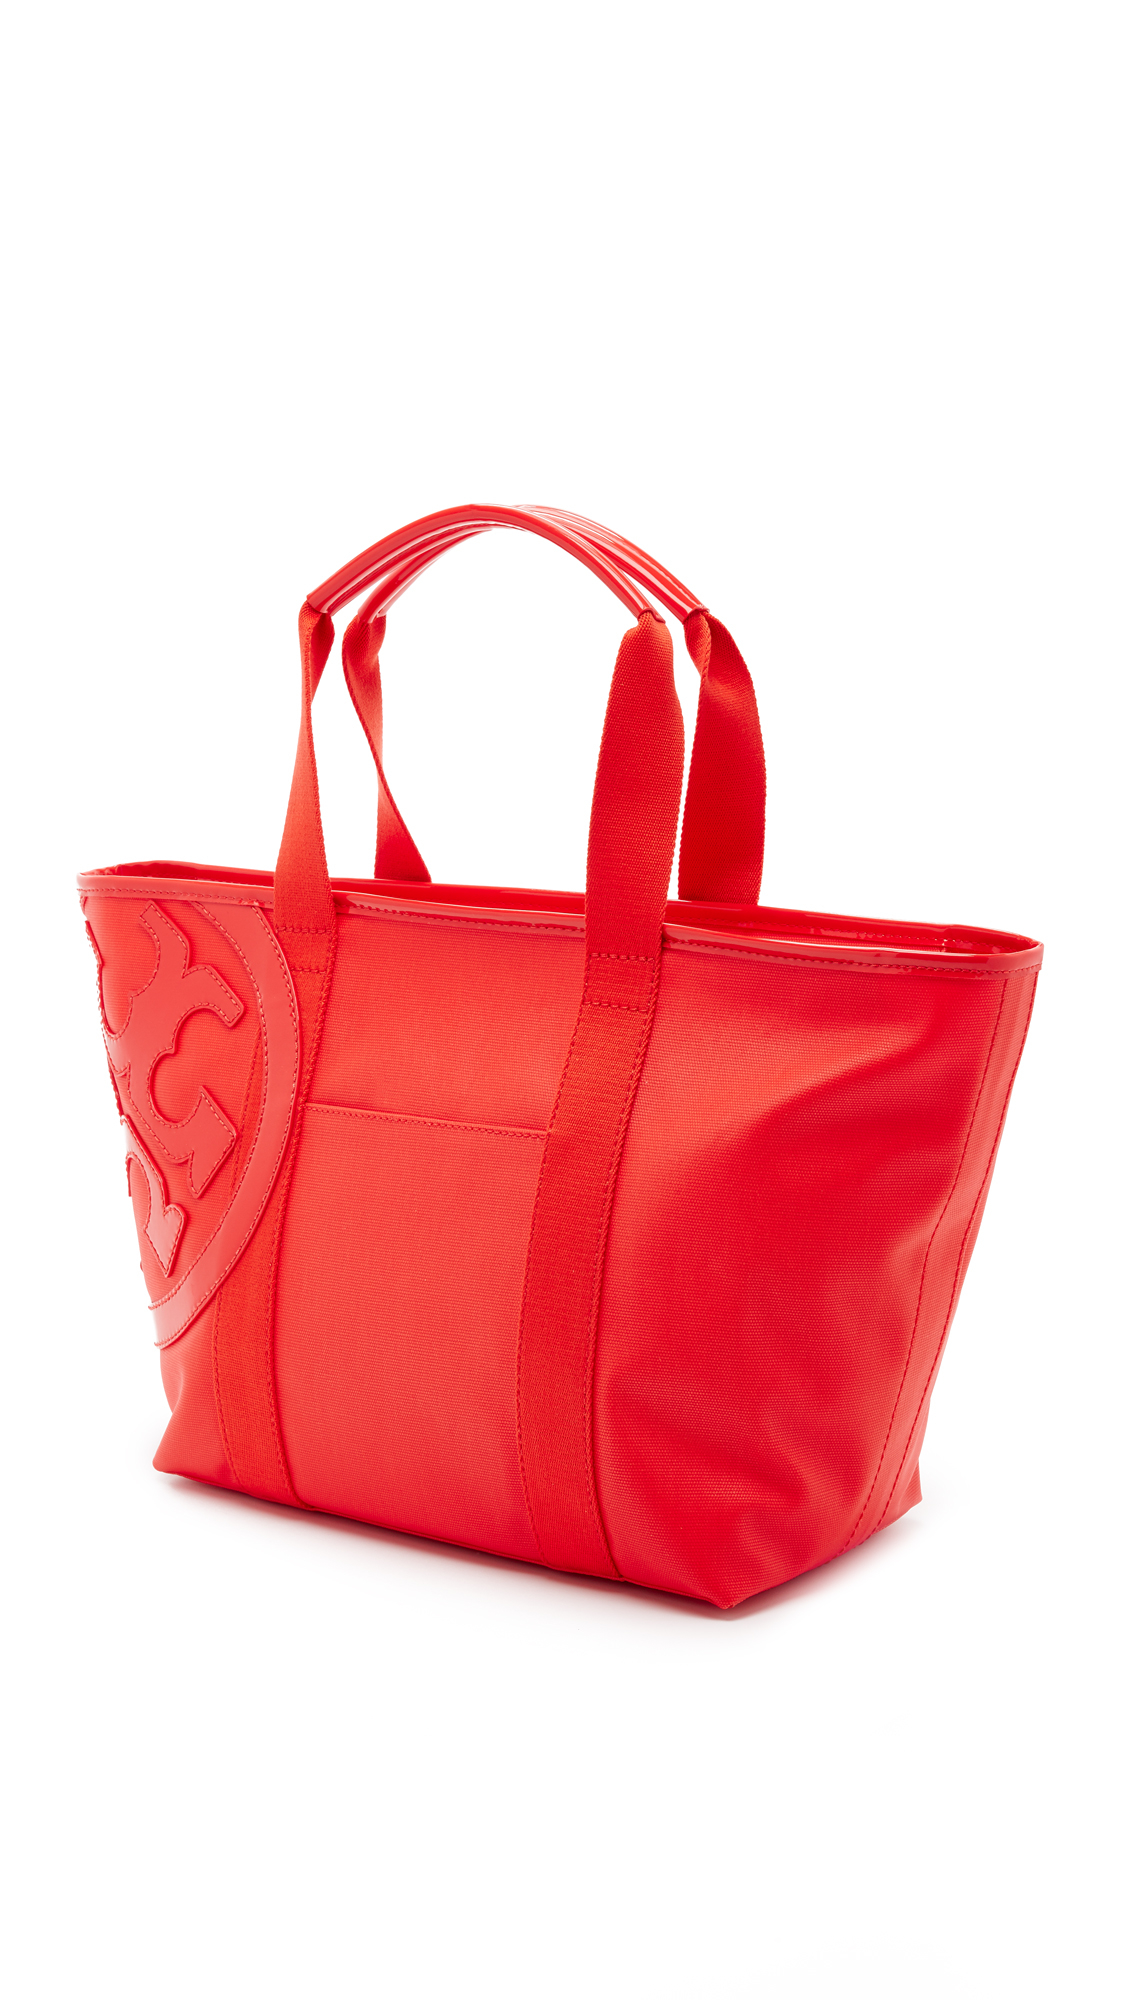 Tory burch Beach Canvas Tote in Red | Lyst